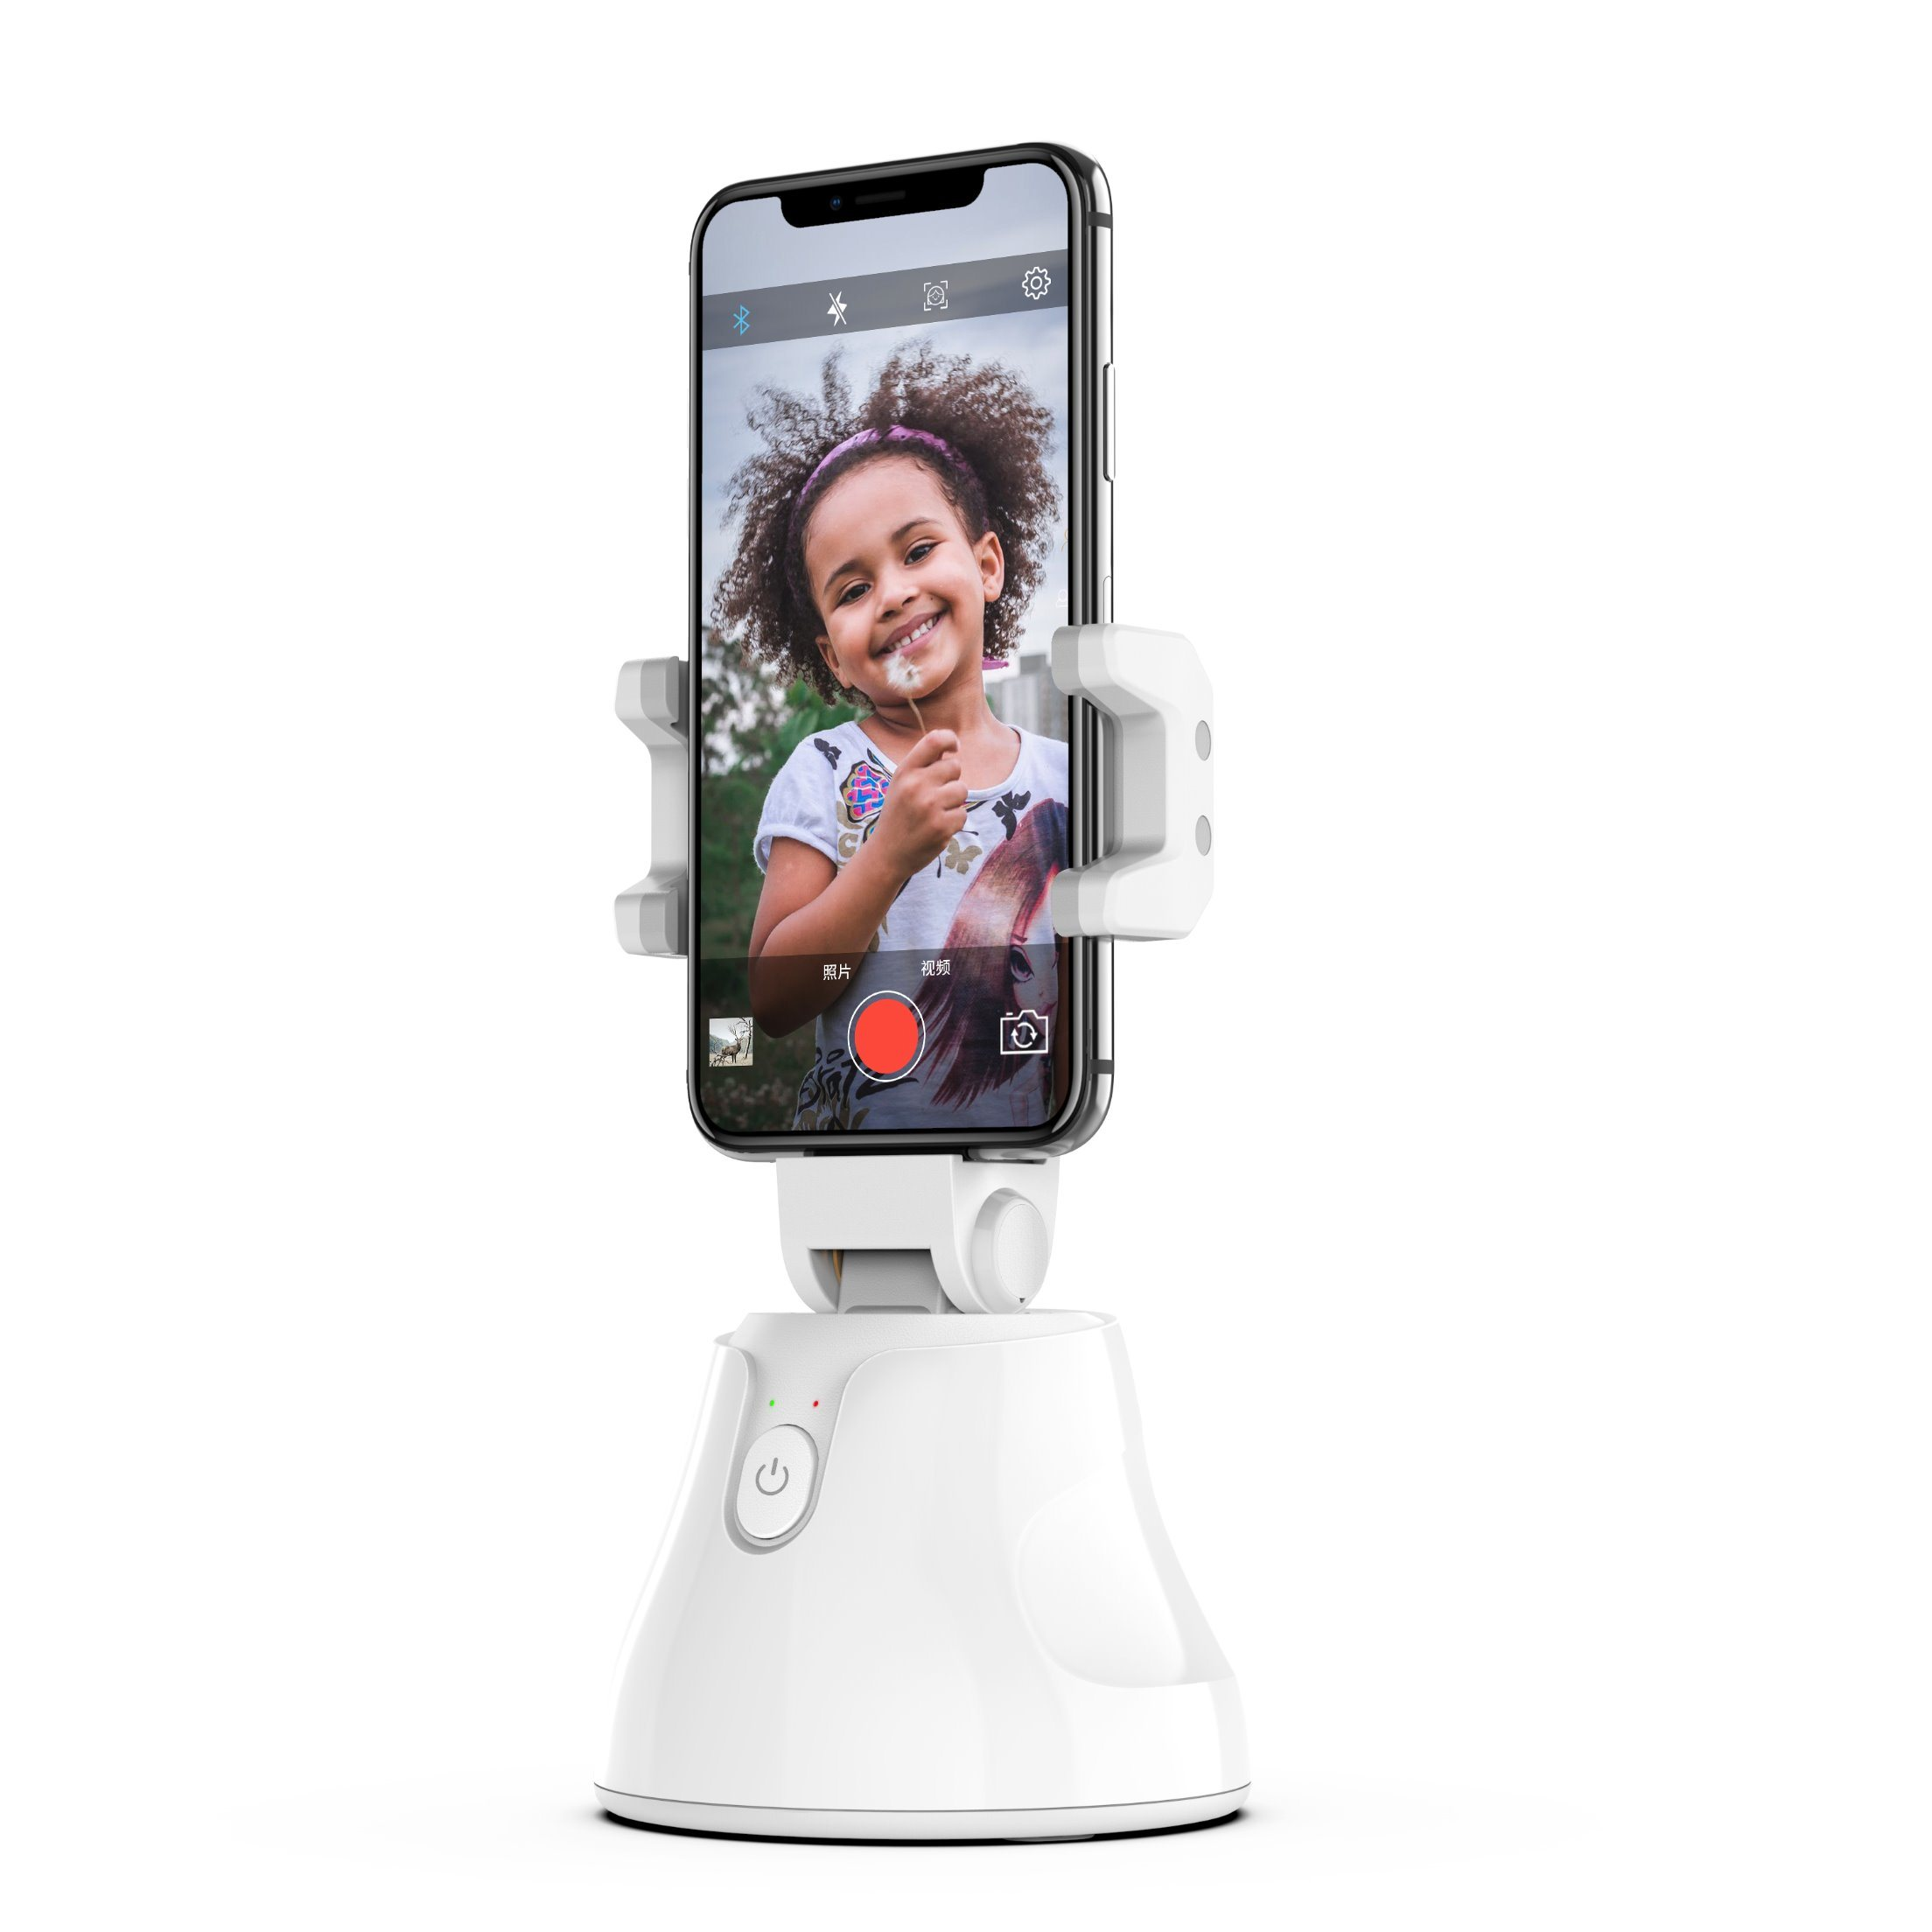 Your Face Selfie Personalized Smartphone Wireless Charging Stand Upload Your Own Image